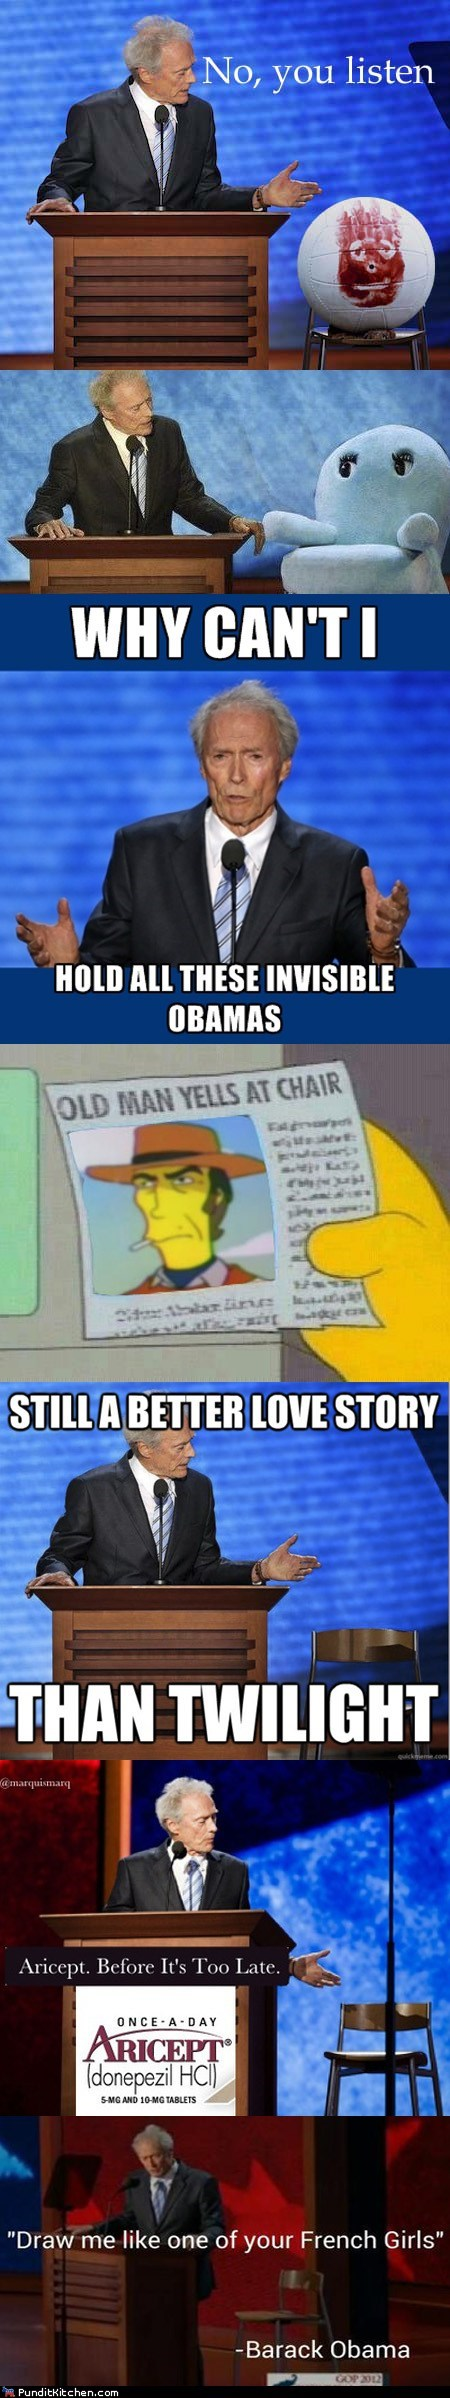 The Best of the Internet's Reaction to Clint Eastwood's Speech